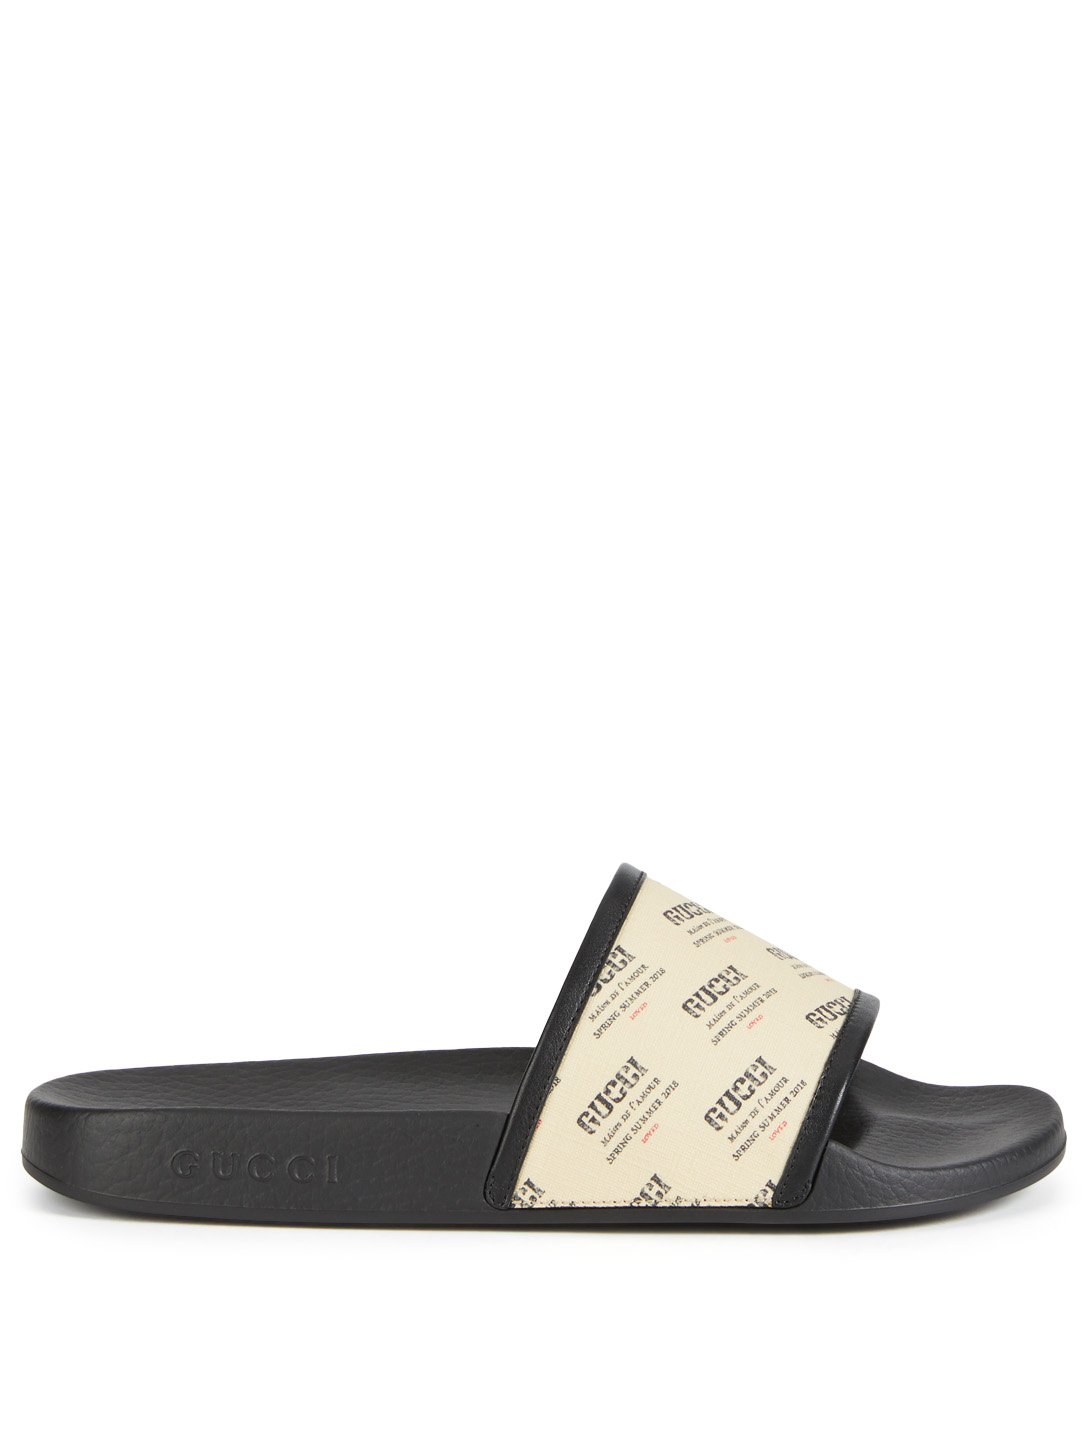 103213df898 GUCCI Pursuit Pool Slides With Gucci Stamp Strap